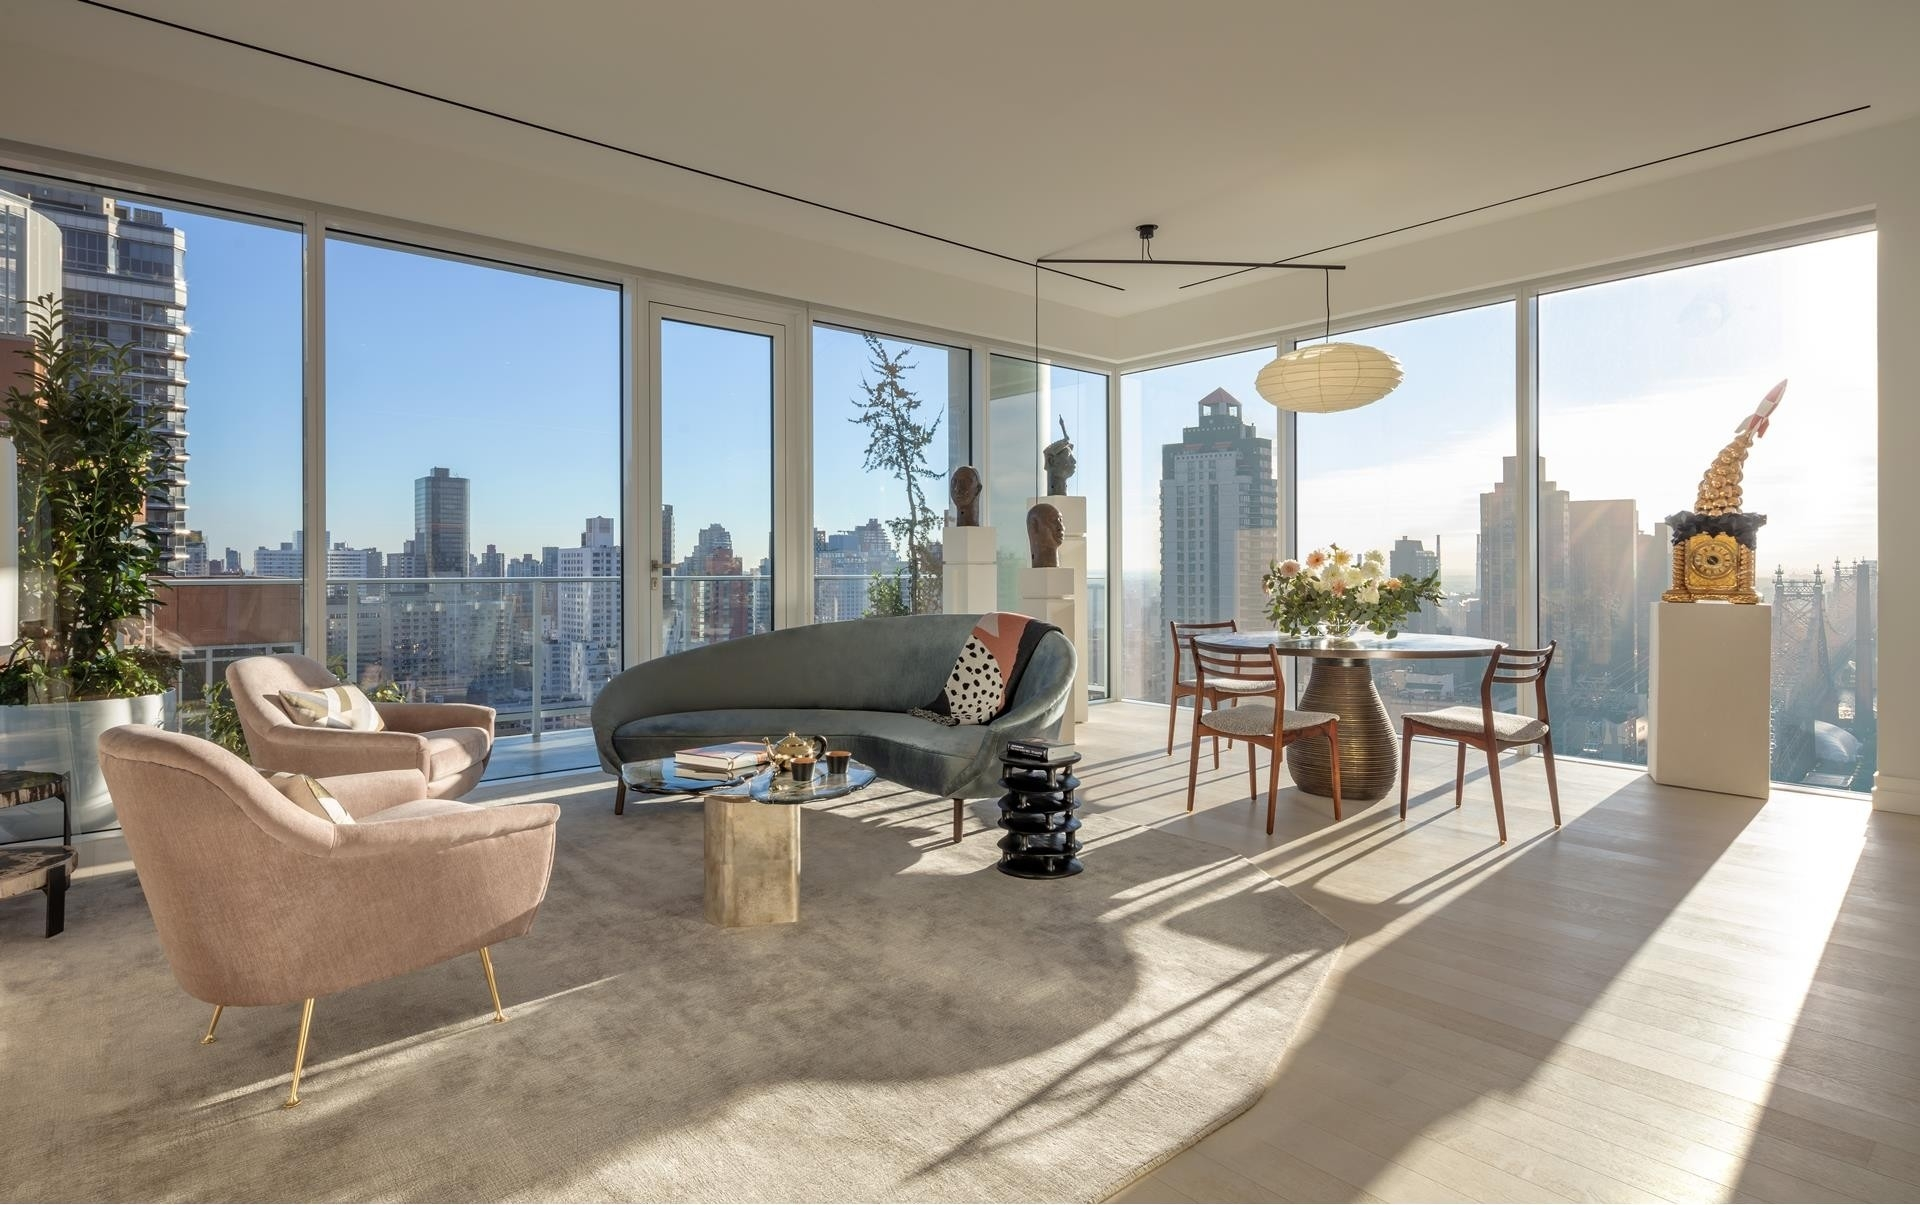 Property at 200 East 59th St, 19D Midtown Manhattan, New York, NY 10022